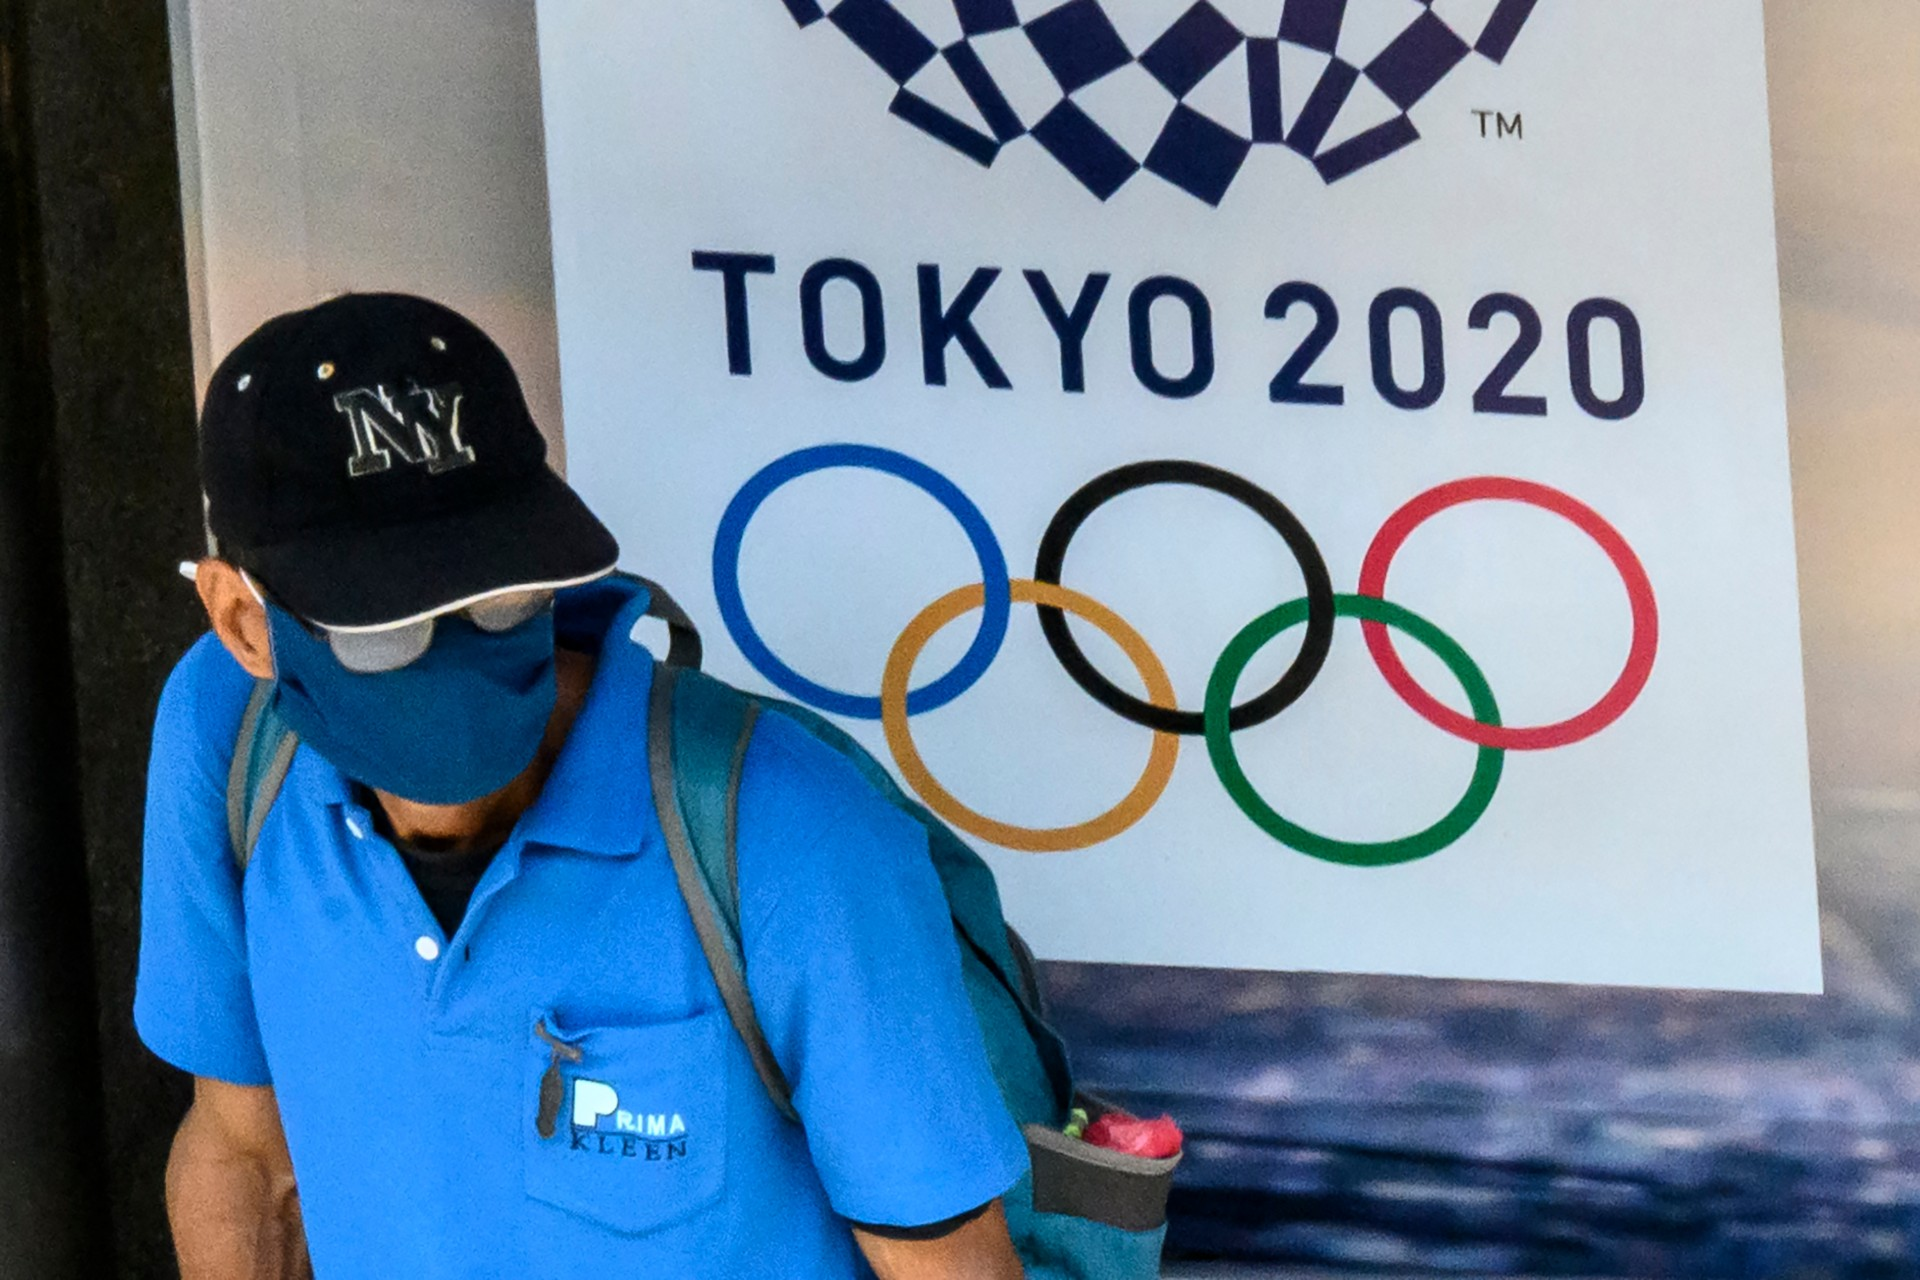 A man, wearing a face mask as a preventive measure against the spread of the COVID-19 novel coronavirus, sits at a bus stop in front of an advertisement for the Tokyo 2020 Summer Olympics Games in Bangkok on March 23, 2020. (MLADEN ANTONOV/AFP via Getty Images)